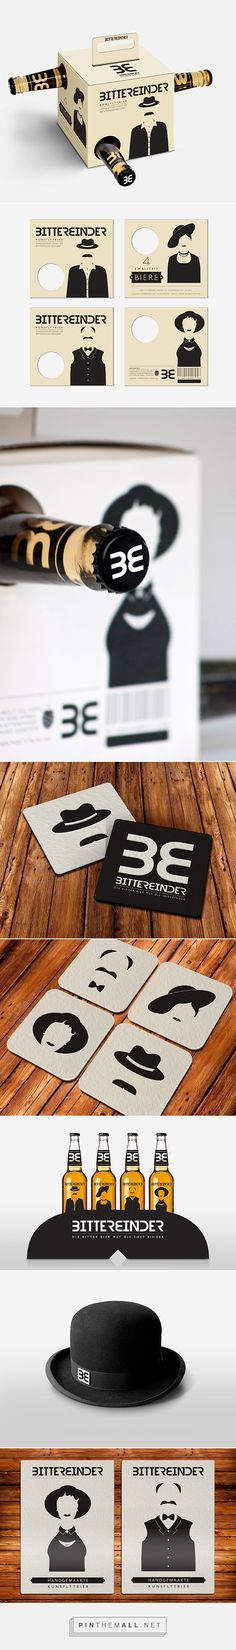 Branding, graphic design and packaging for Bittereinder on Behance by Ronnie La Rue Cape Town, South Africa curated by Packaging Diva PD. Bittereinder refers so someone who pulls through till the end. Aimed at a target market who is between the ages of forty and sixty years old, and still drinks beer.